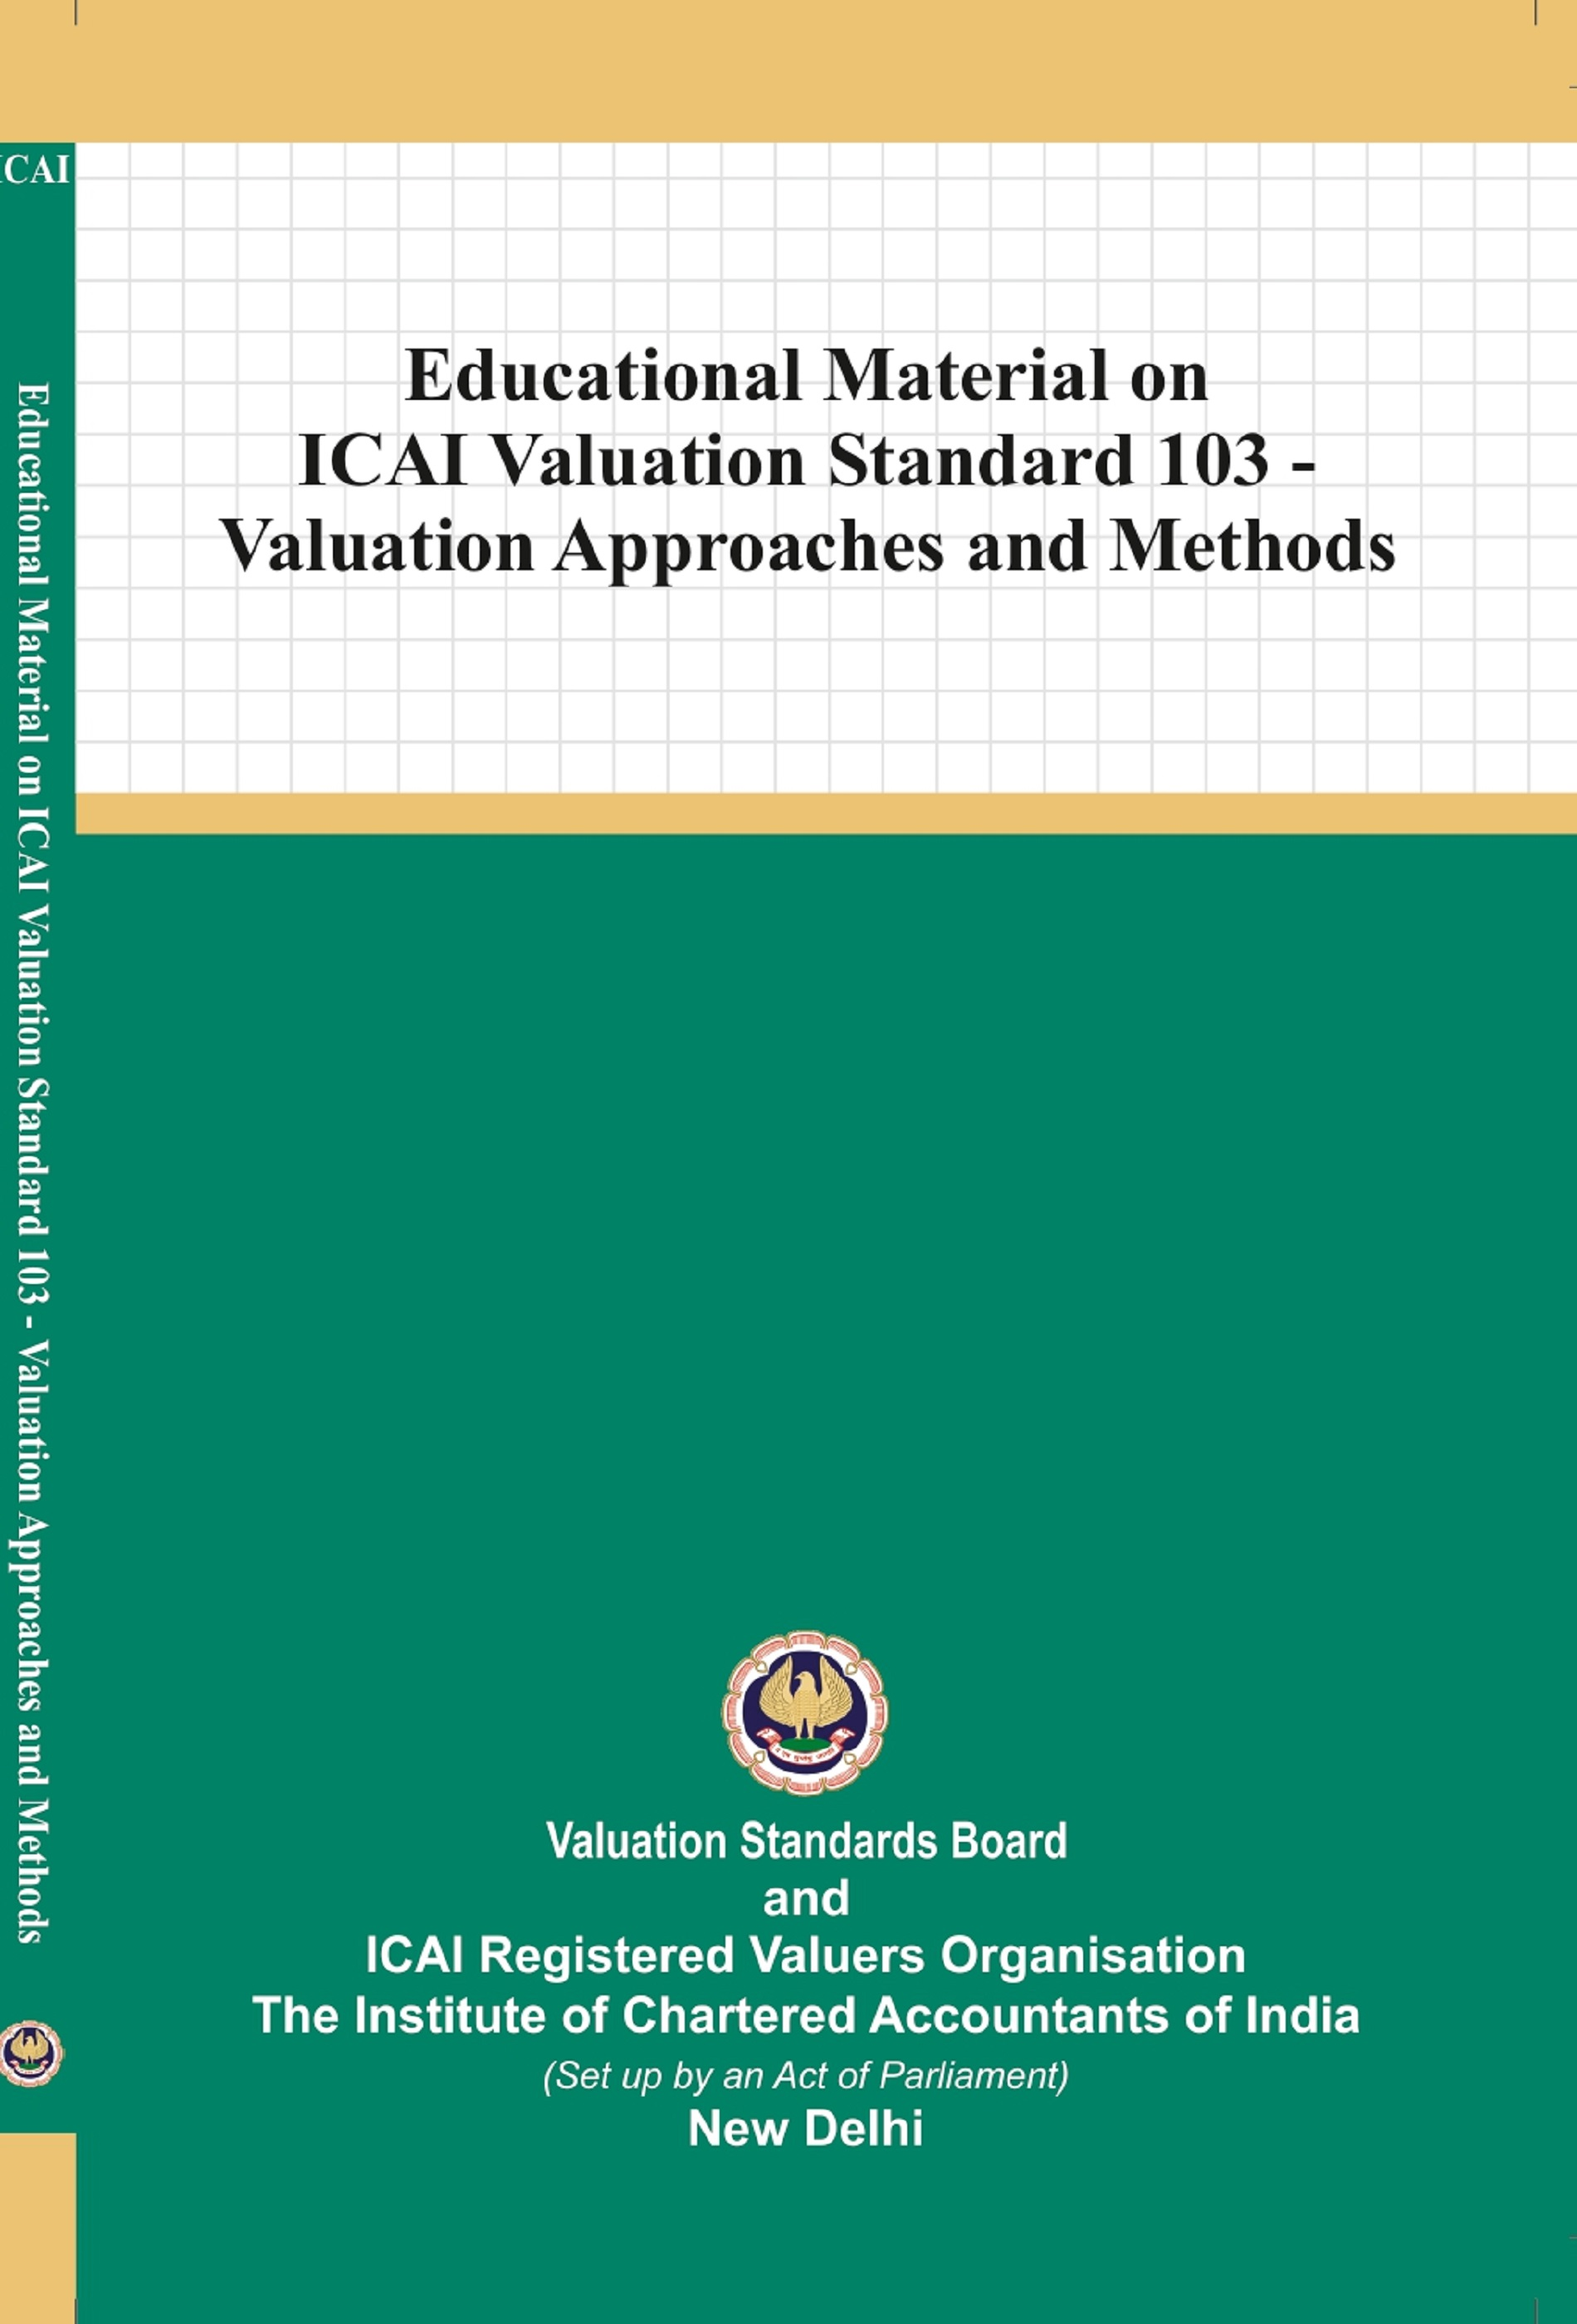 Educational Material on ICAI Valuation Standard 103 - Valuation Approaches and Methods (February, 2021)